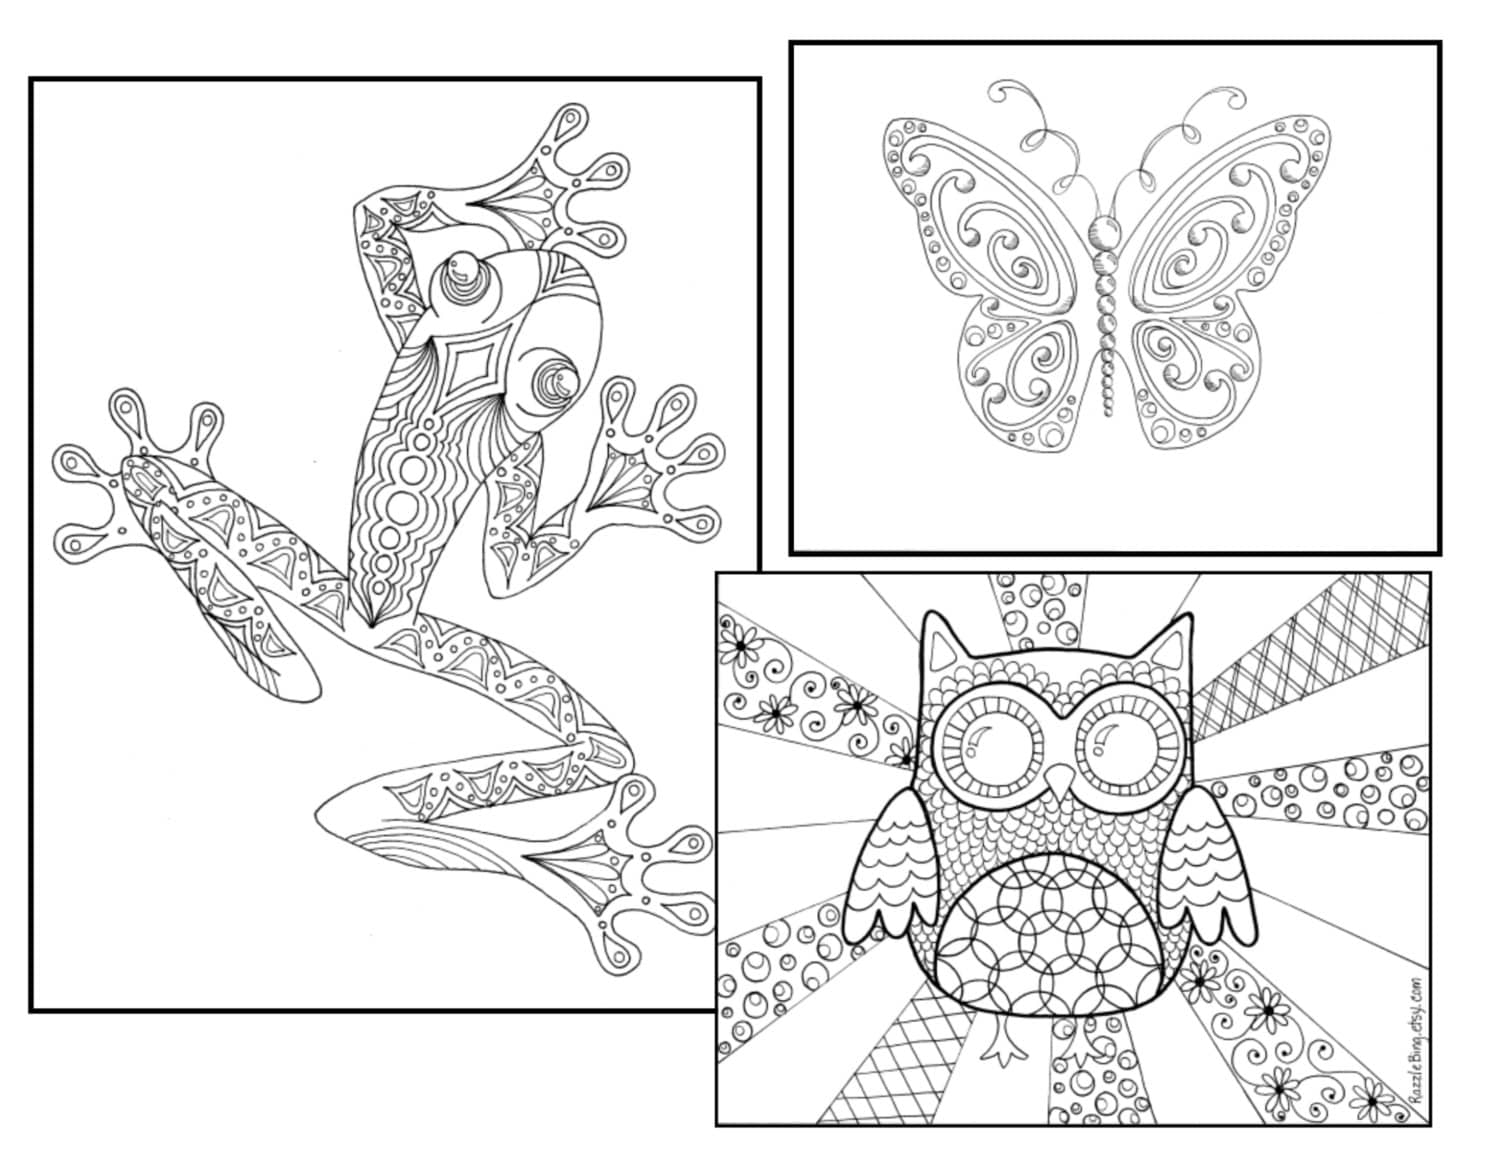 DIY Bookmark Printable Coloring PageZentangle inspired Etsy